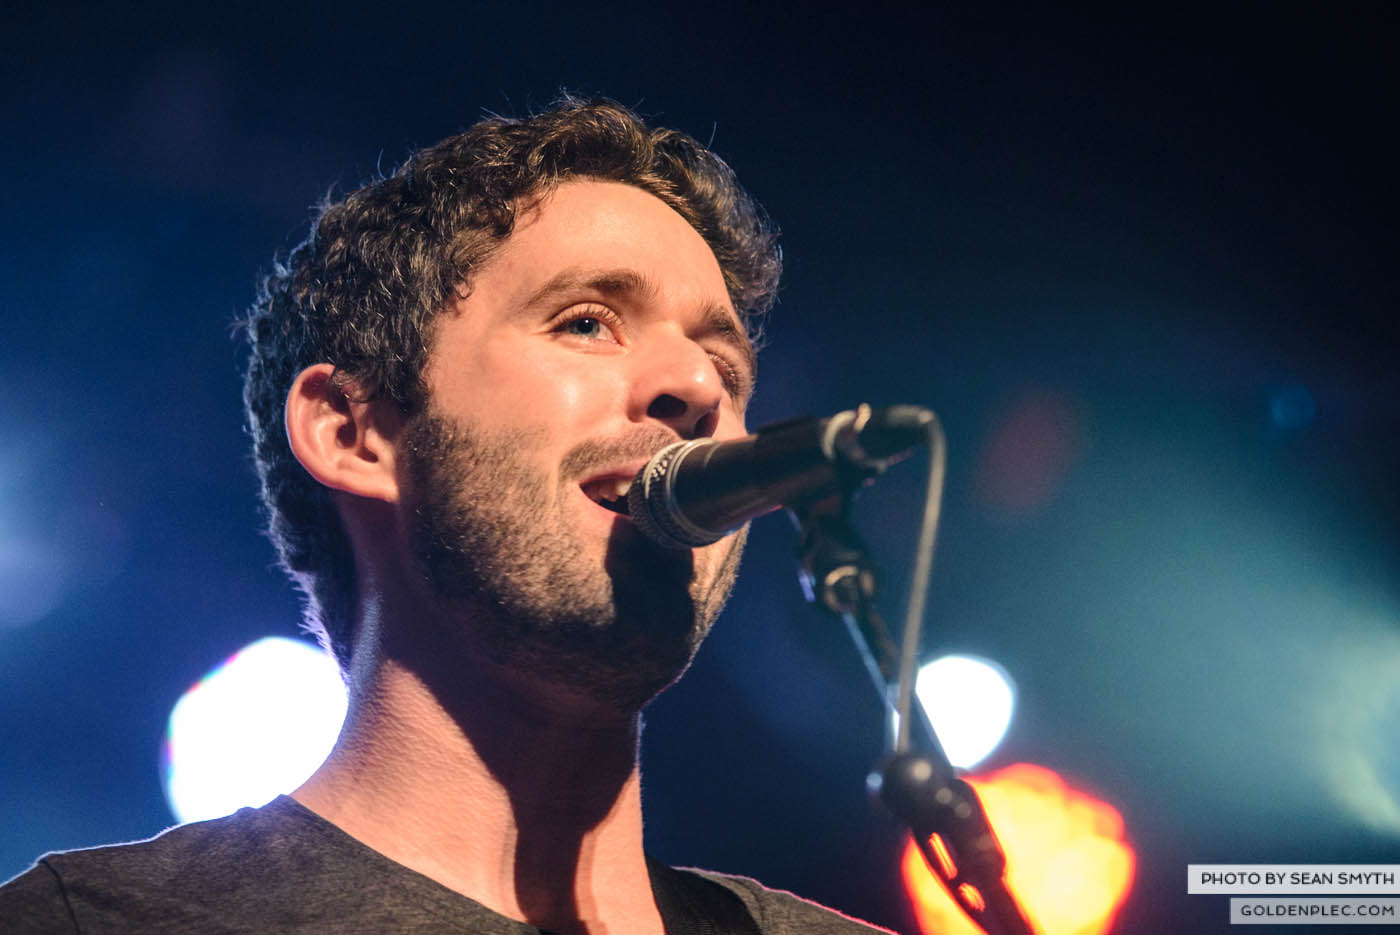 the-antlers-at-the-olympia-theatre-by-sean-smyth-30-10-14-14-of-22